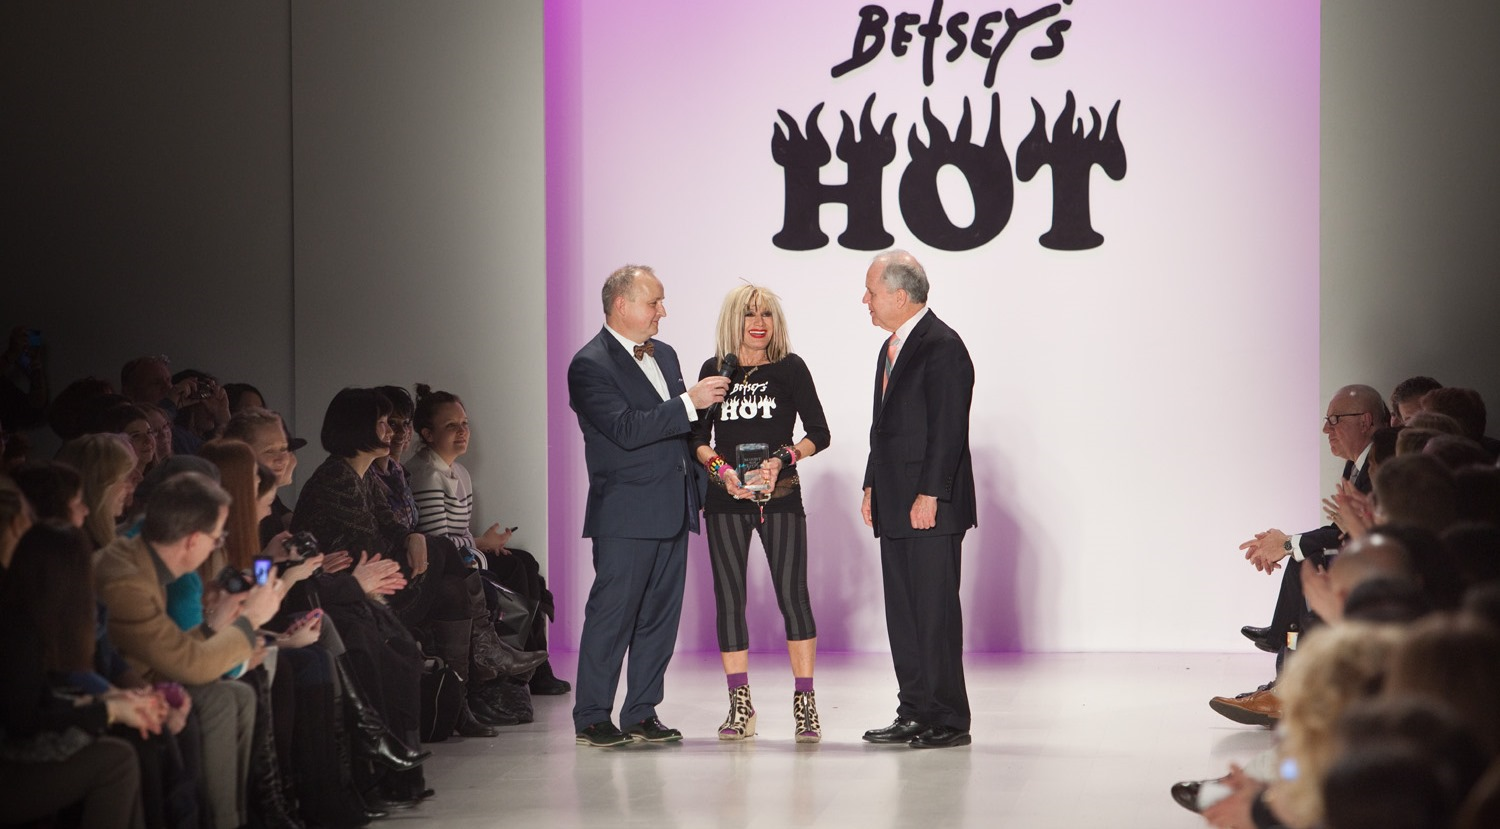 Marist and design icon Betsey Johnson team up at Mercedes-Benz Fashion Week